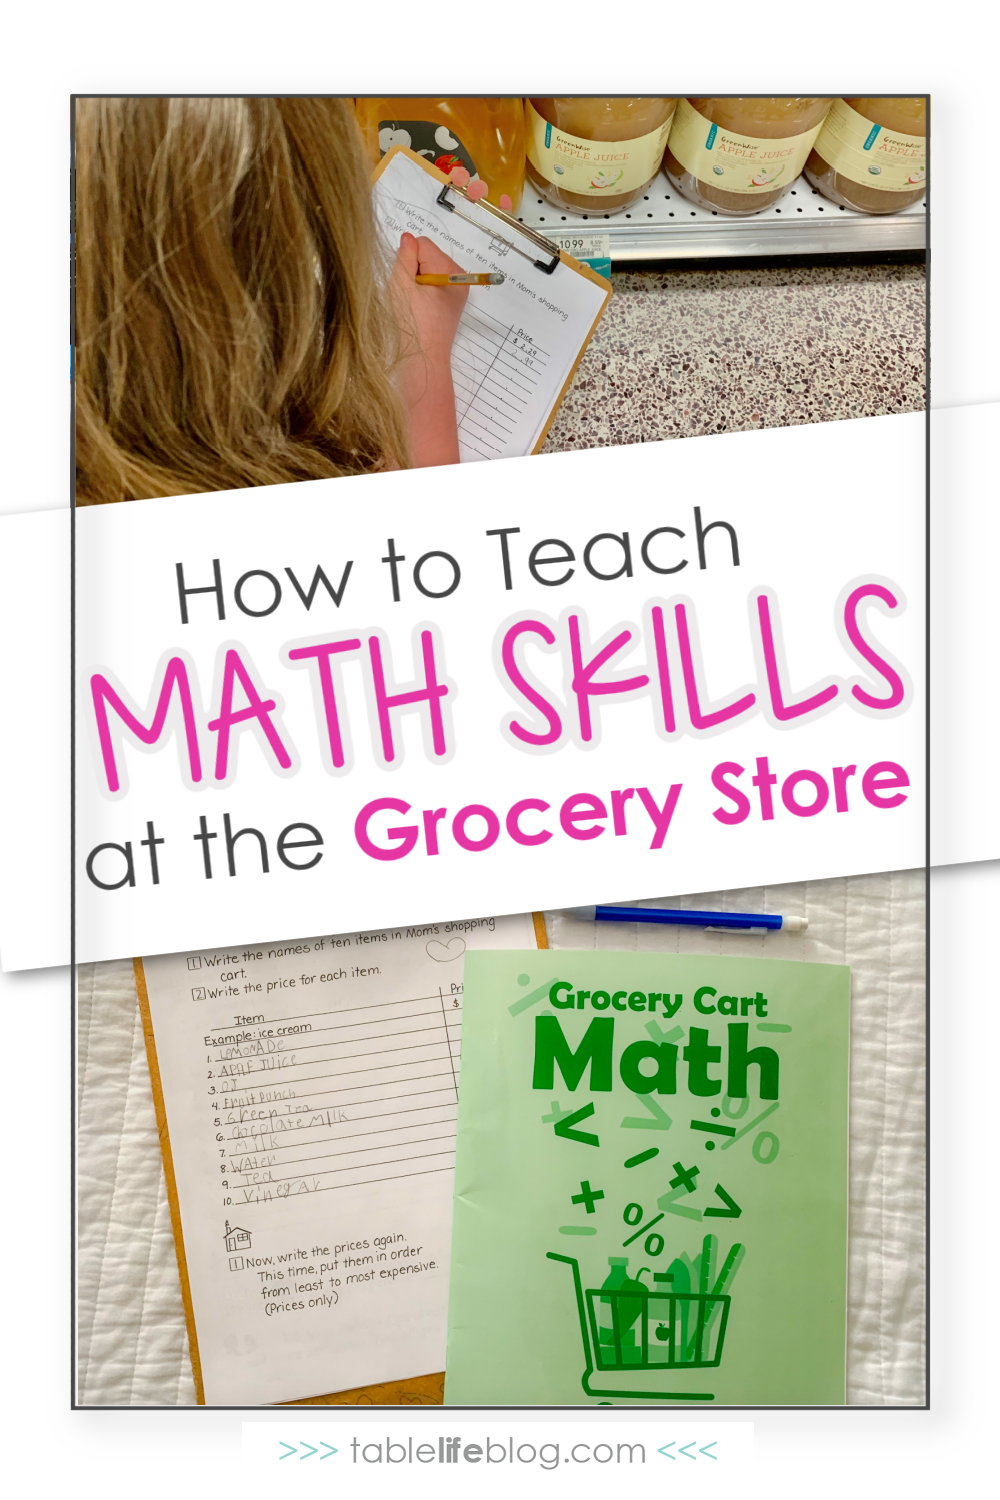 Looking for ways to homeschool while running errands with your kids? We found a great resource that will help you tackle math at the grocery store!